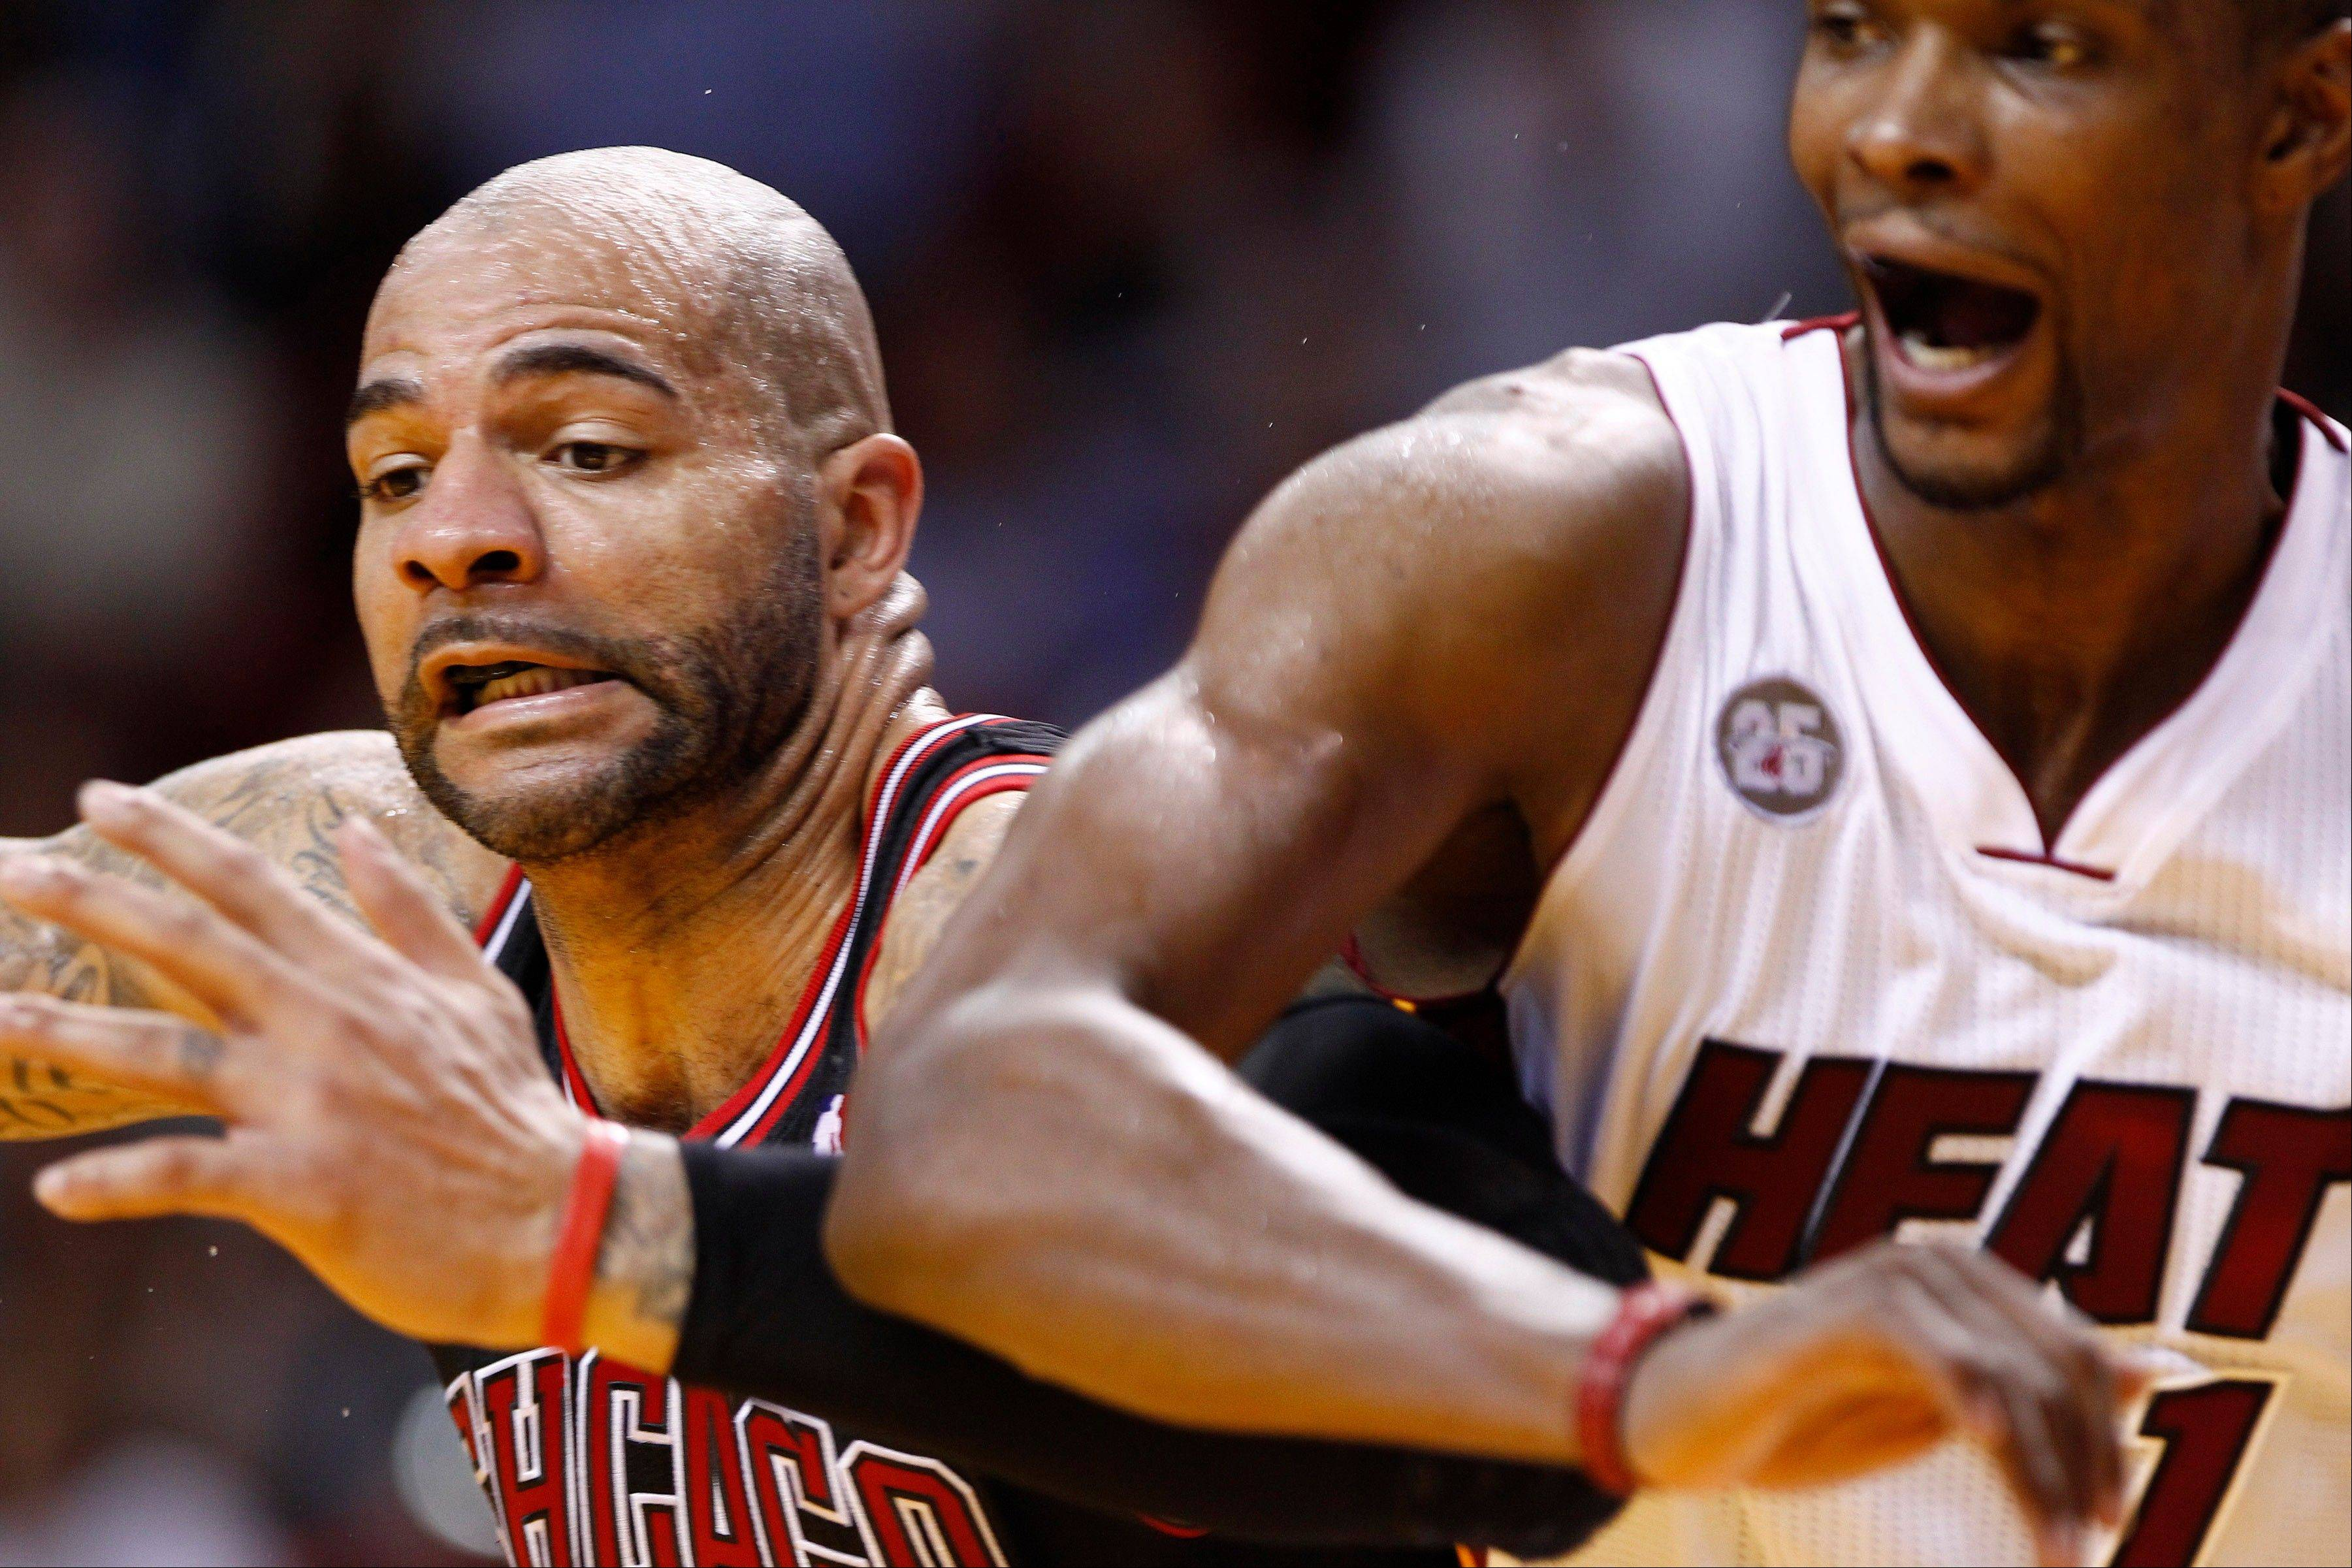 The Bulls' Carlos Boozer and the Heat's Chris Bosh battle for the ball during the second half Friday night in Miami.